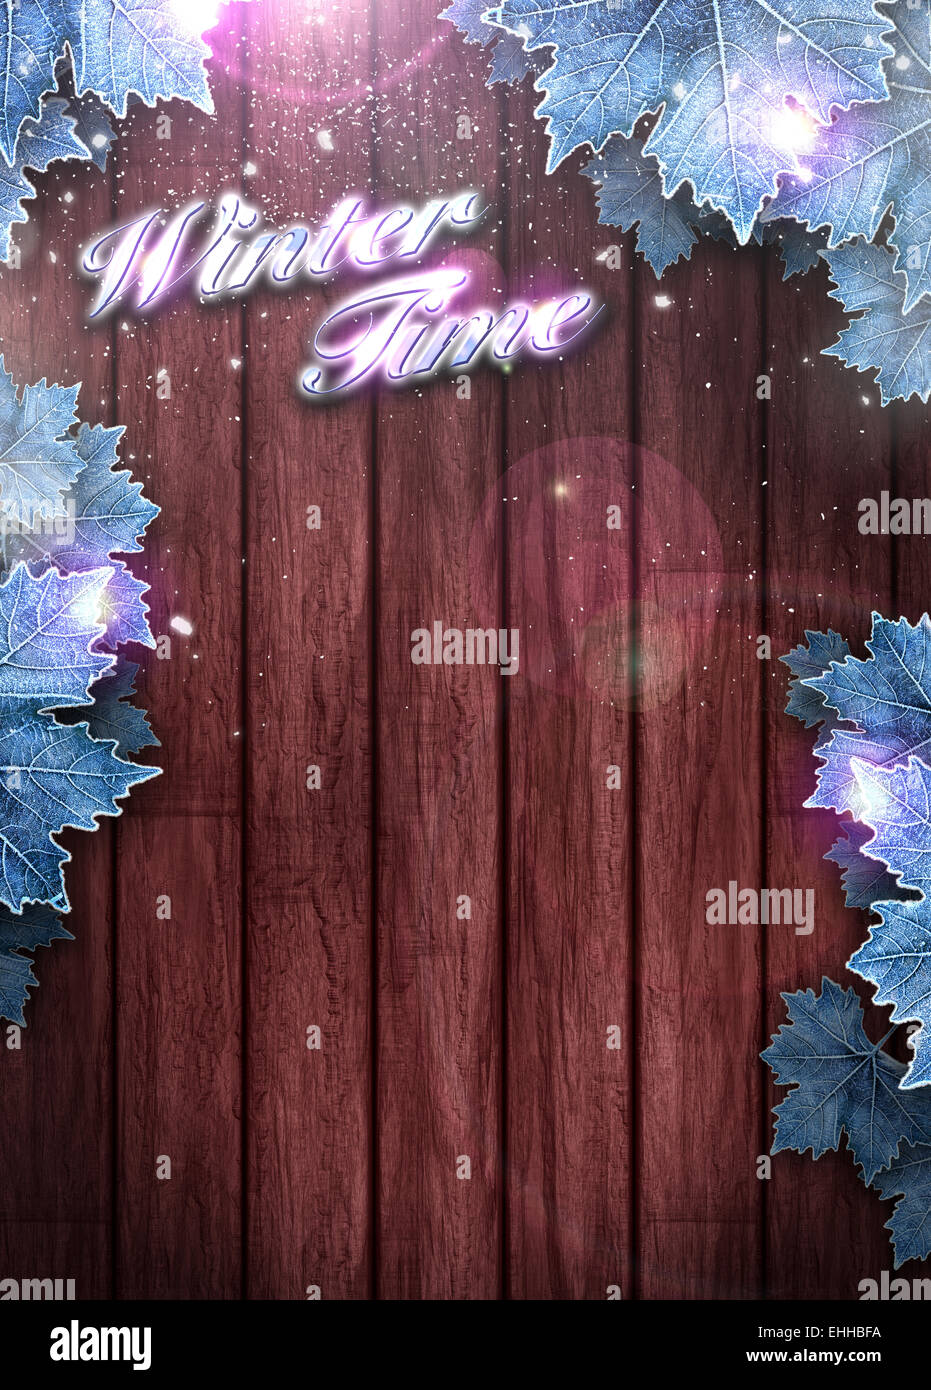 winter business or invitation poster or flyer background stock photo winter business or invitation poster or flyer background space